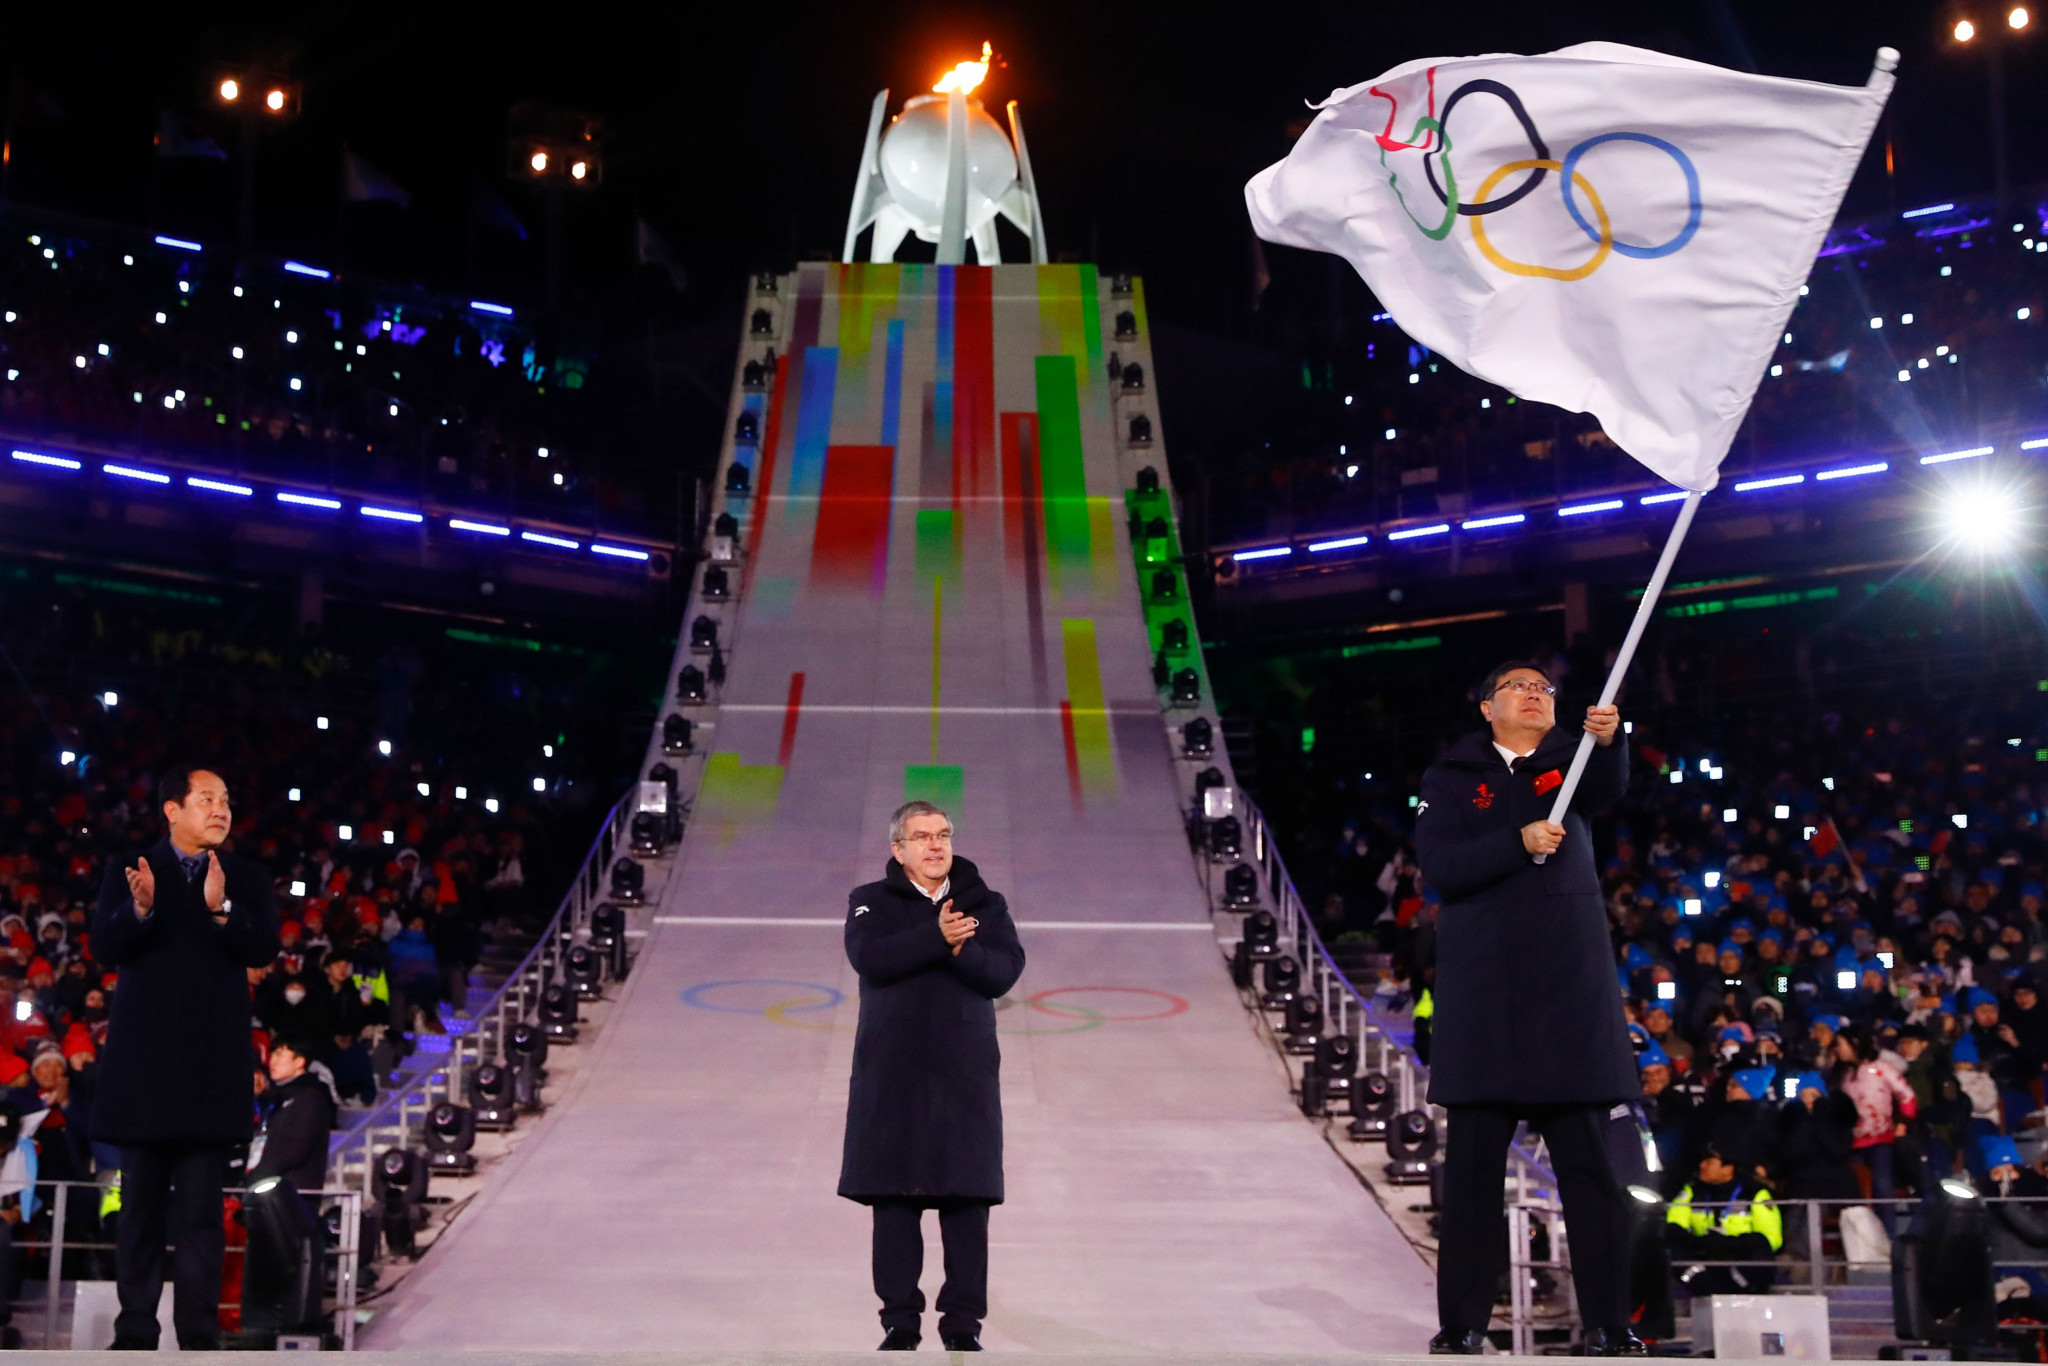 Beijing Mayor Chen Jining waves the Olympic flag during the Pyeongchang 2018 Closing Ceremony to mark the fact the Chinese city will host the 2022 Olympics as IOC President Thomas Bach watches on ©Getty Images